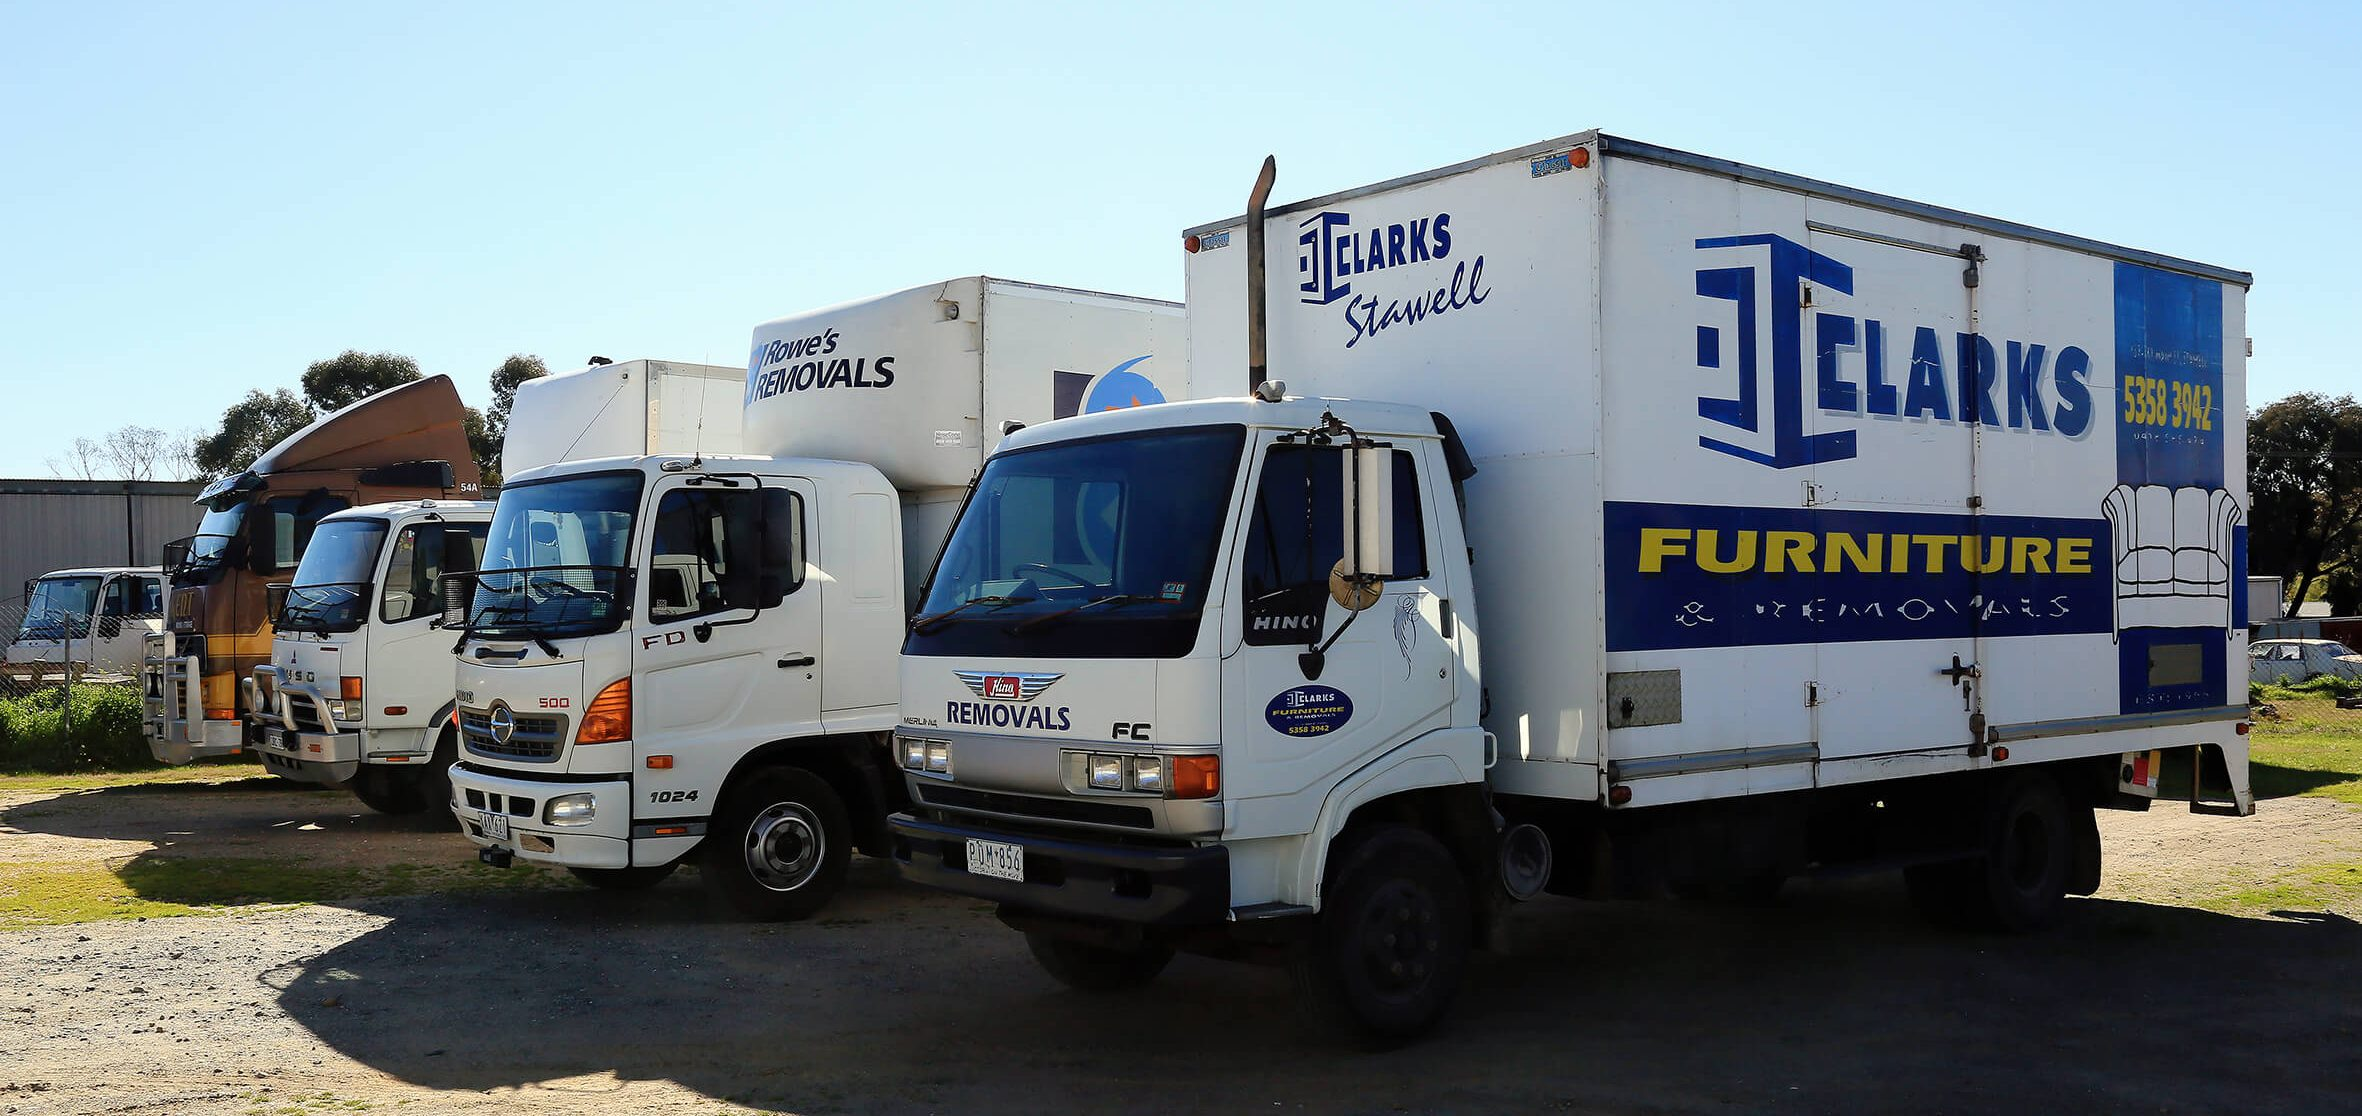 Clarks Removals Stawell